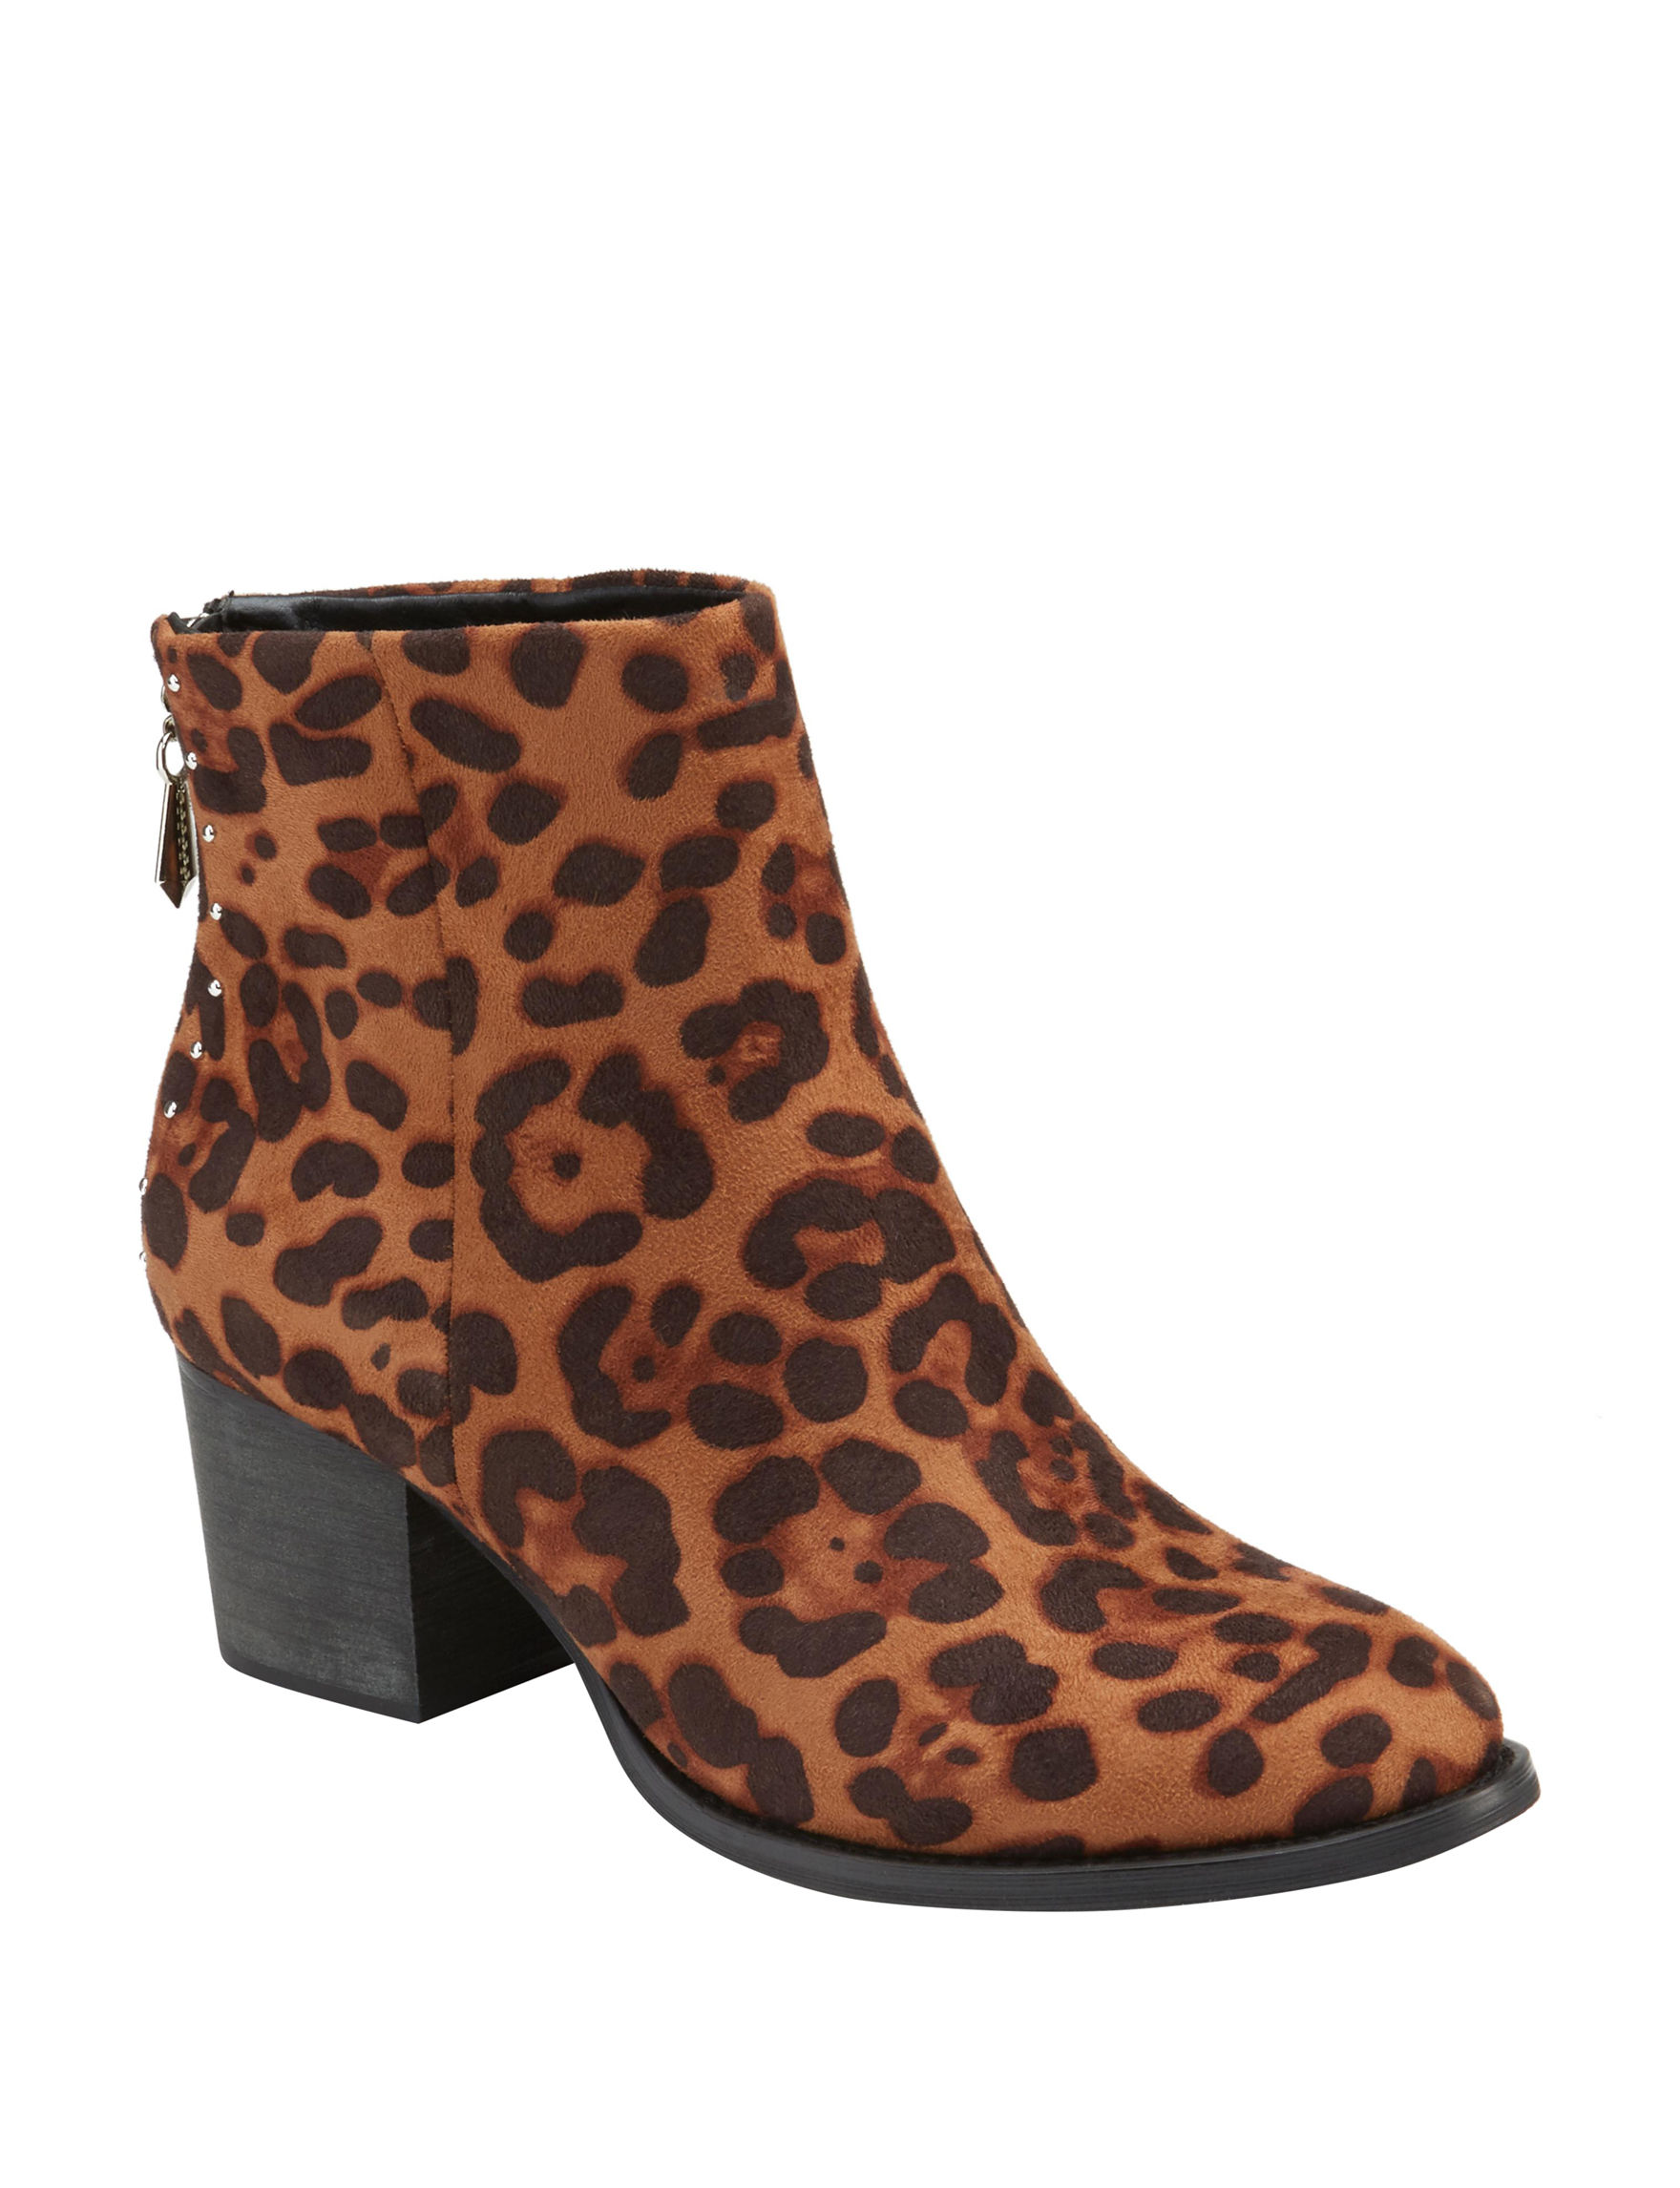 Olivia Miller Leopard Ankle Boots & Booties